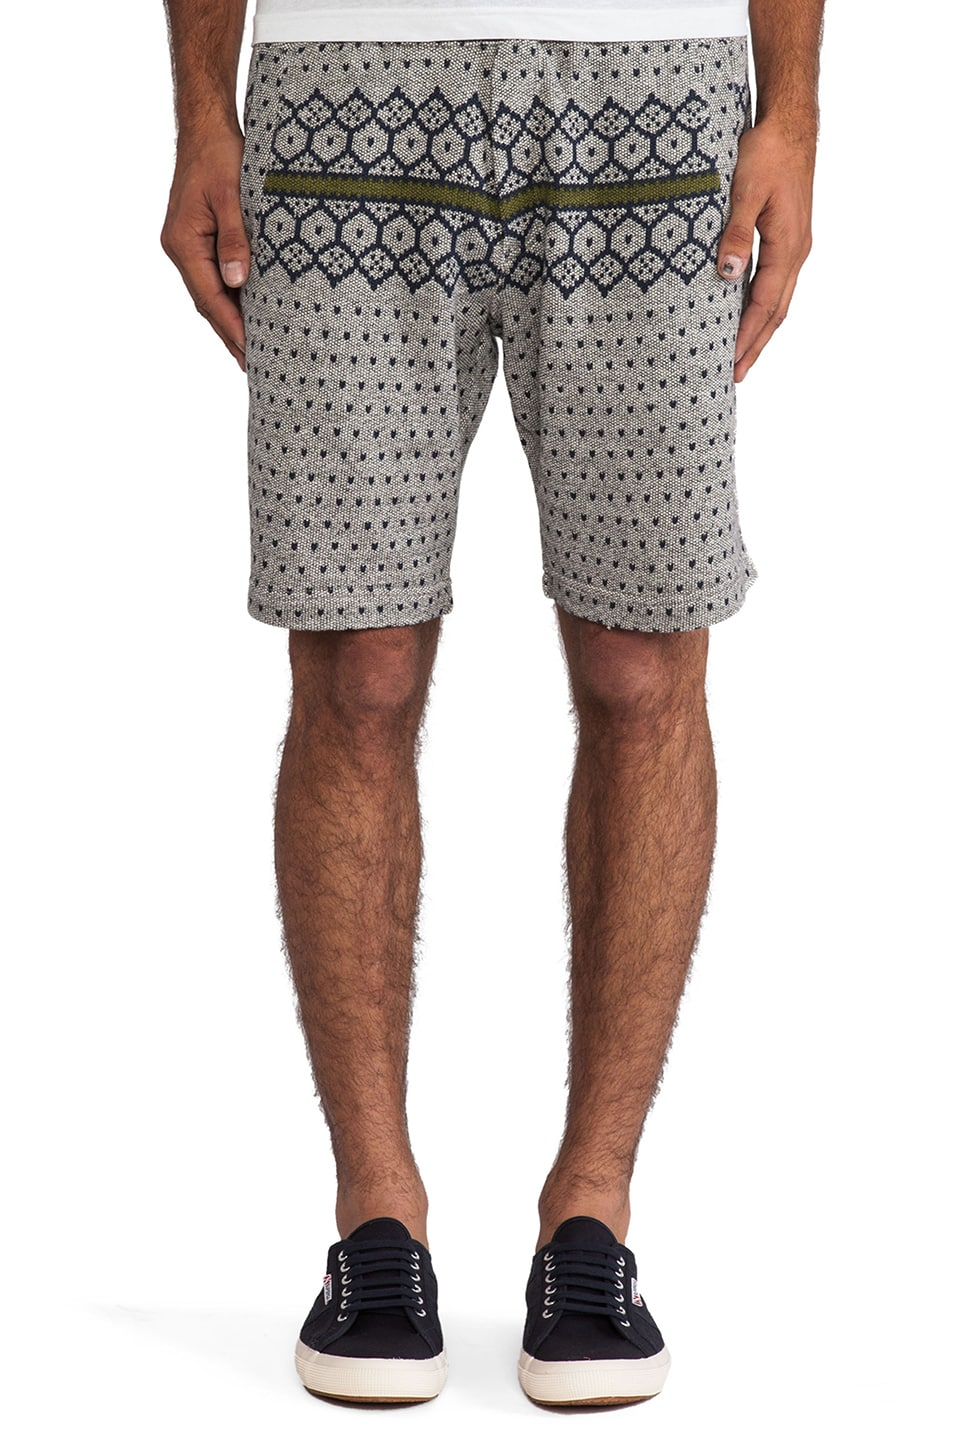 Burkman Bros. Sweater Print Short in Grey Heather